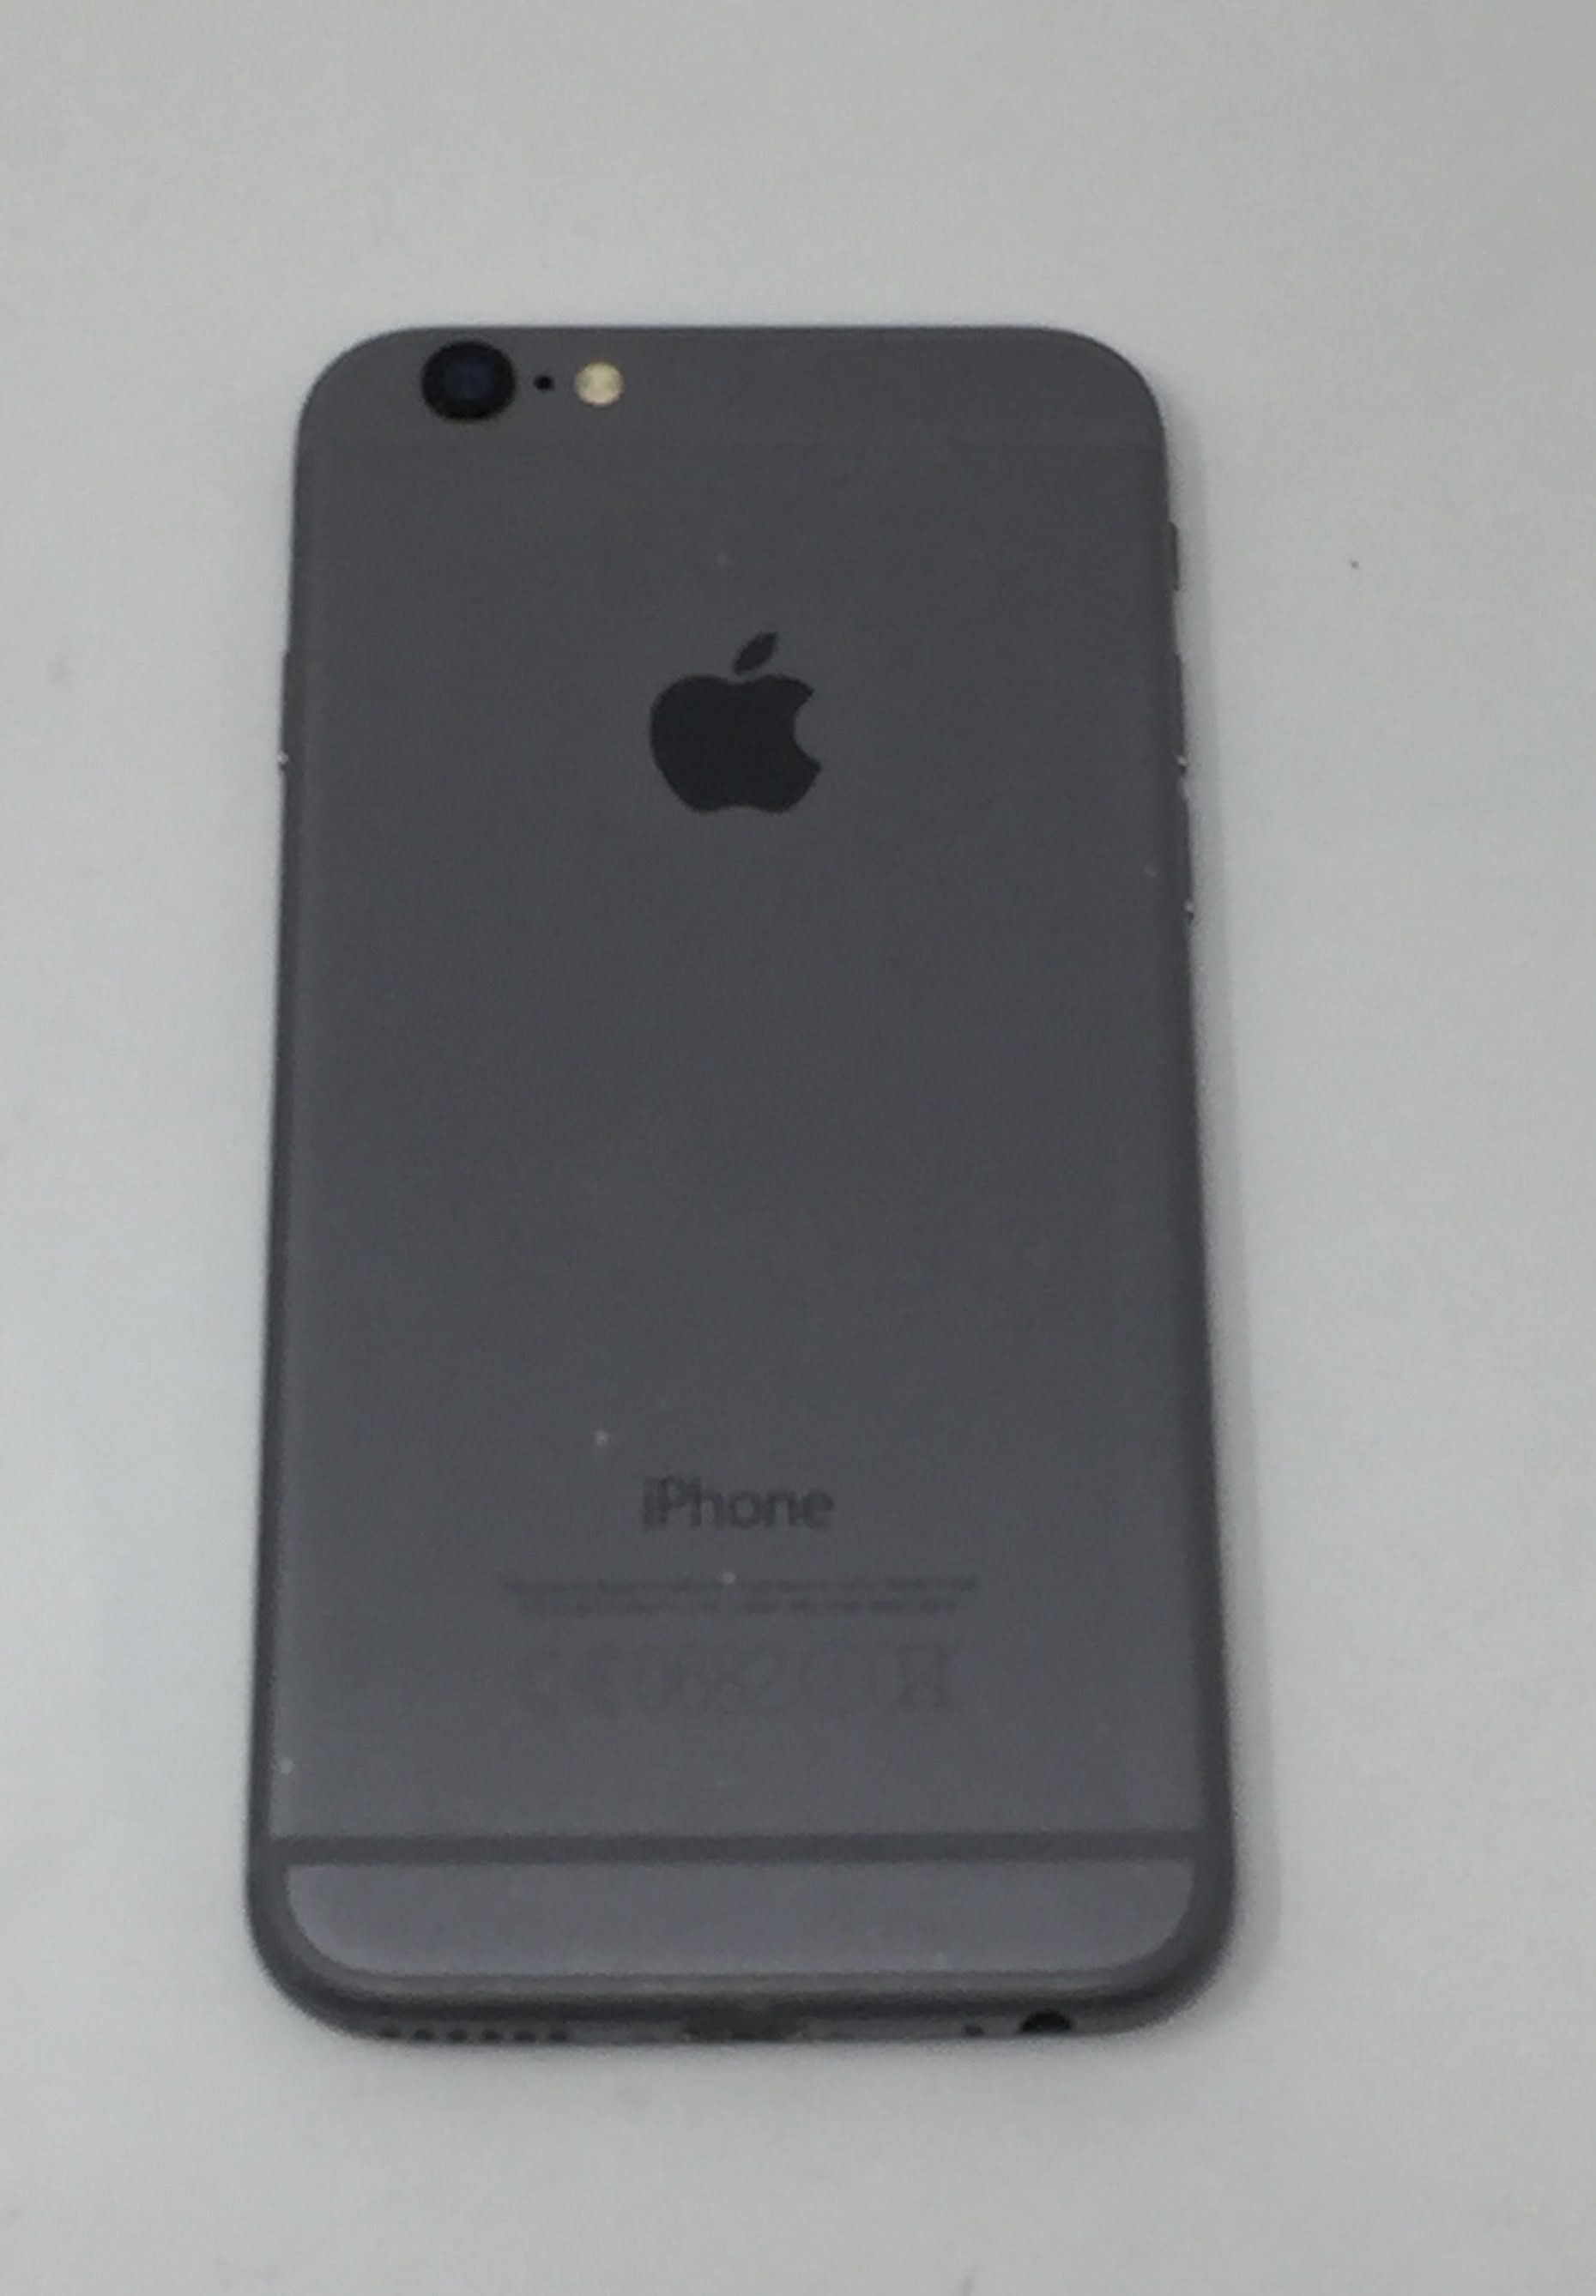 iPhone 6 32GB, 32 GB, GRAY, Bild 2